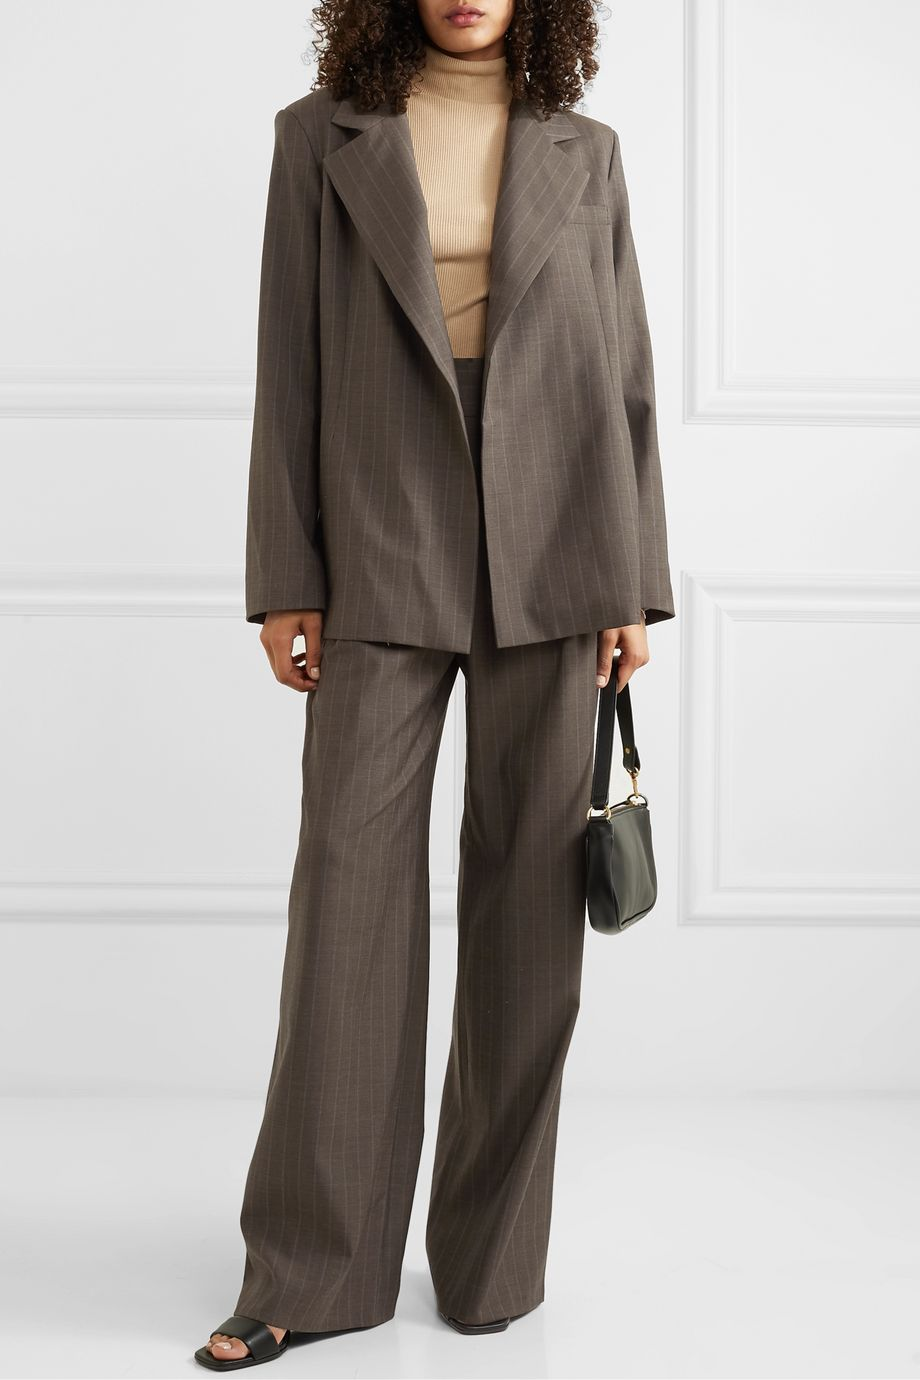 aaizél + NET SUSTAIN pinstriped wool blazer